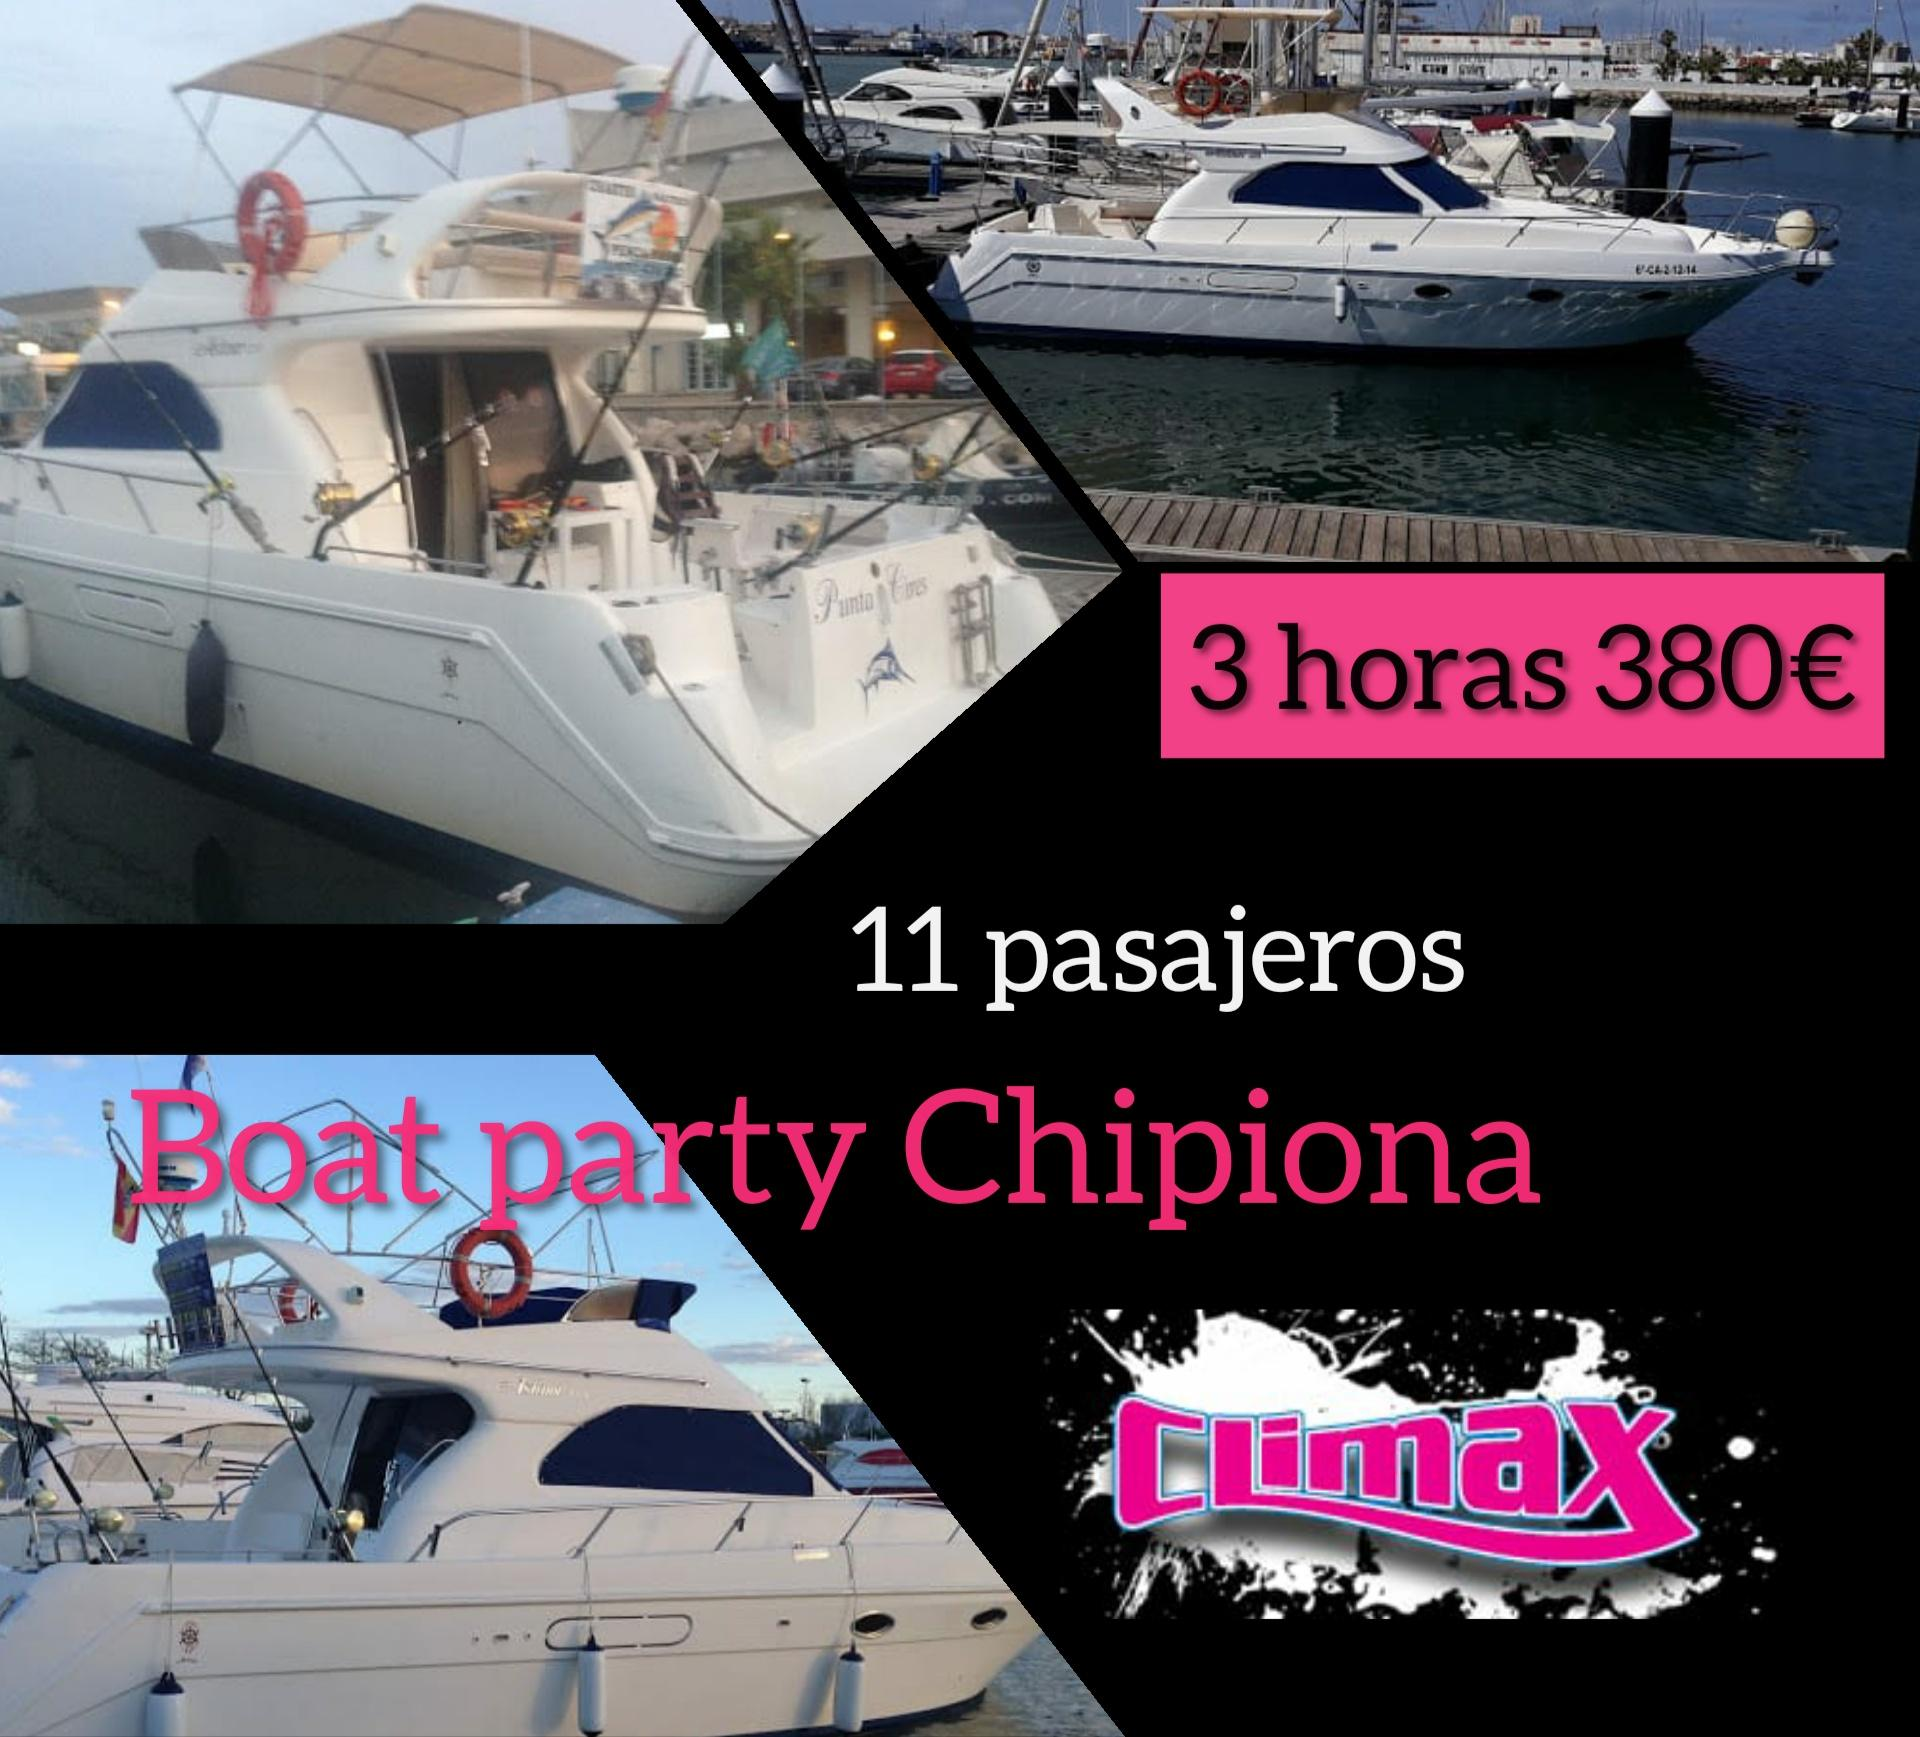 Boat party chipiona